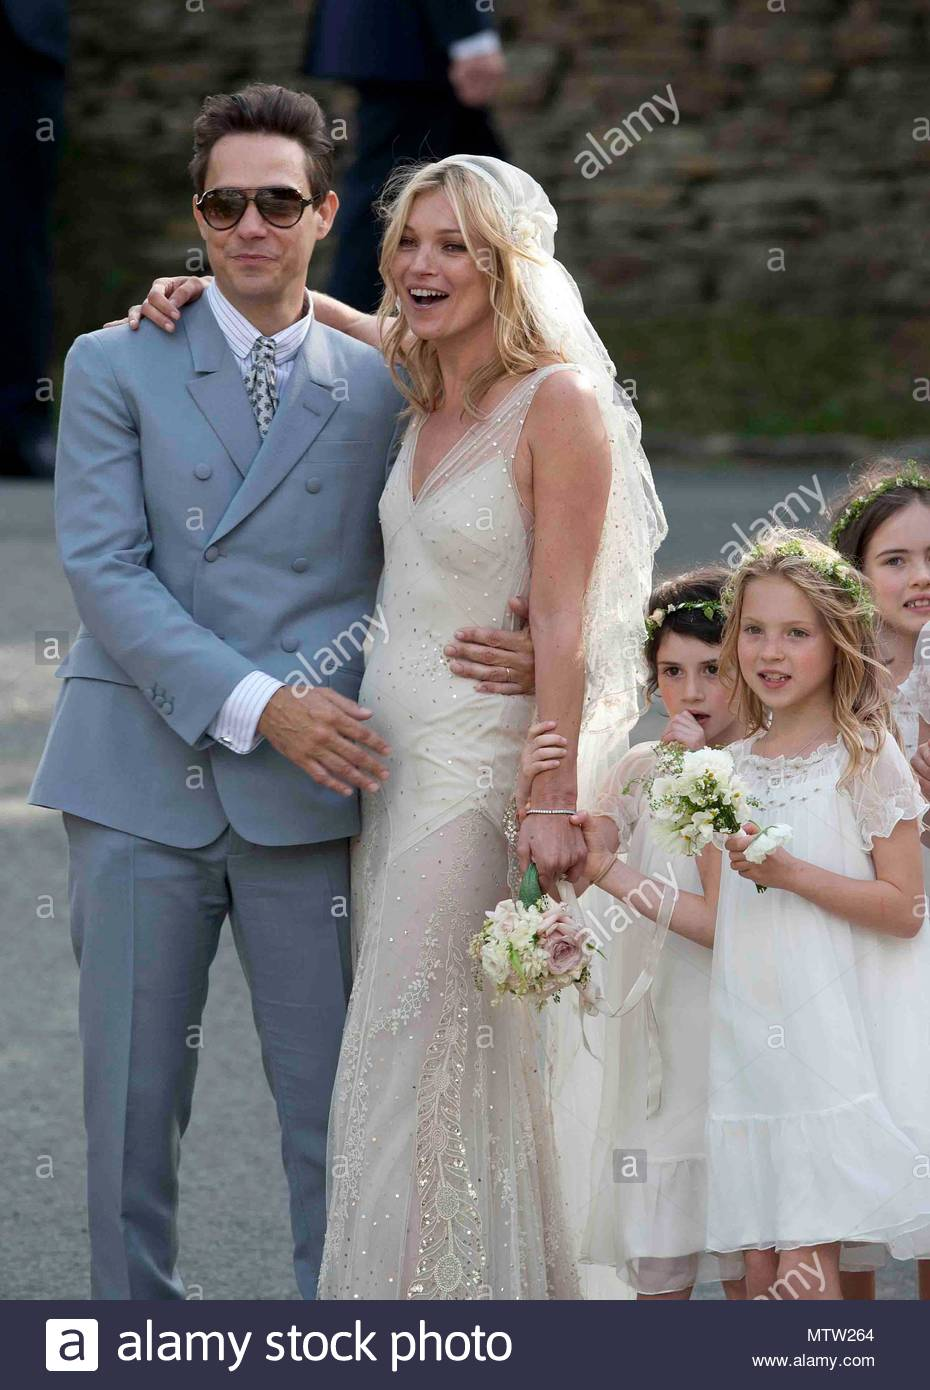 The marriage ceremony of Kate Moss was held in the small old church of St. Margaret 07/02/2011 66